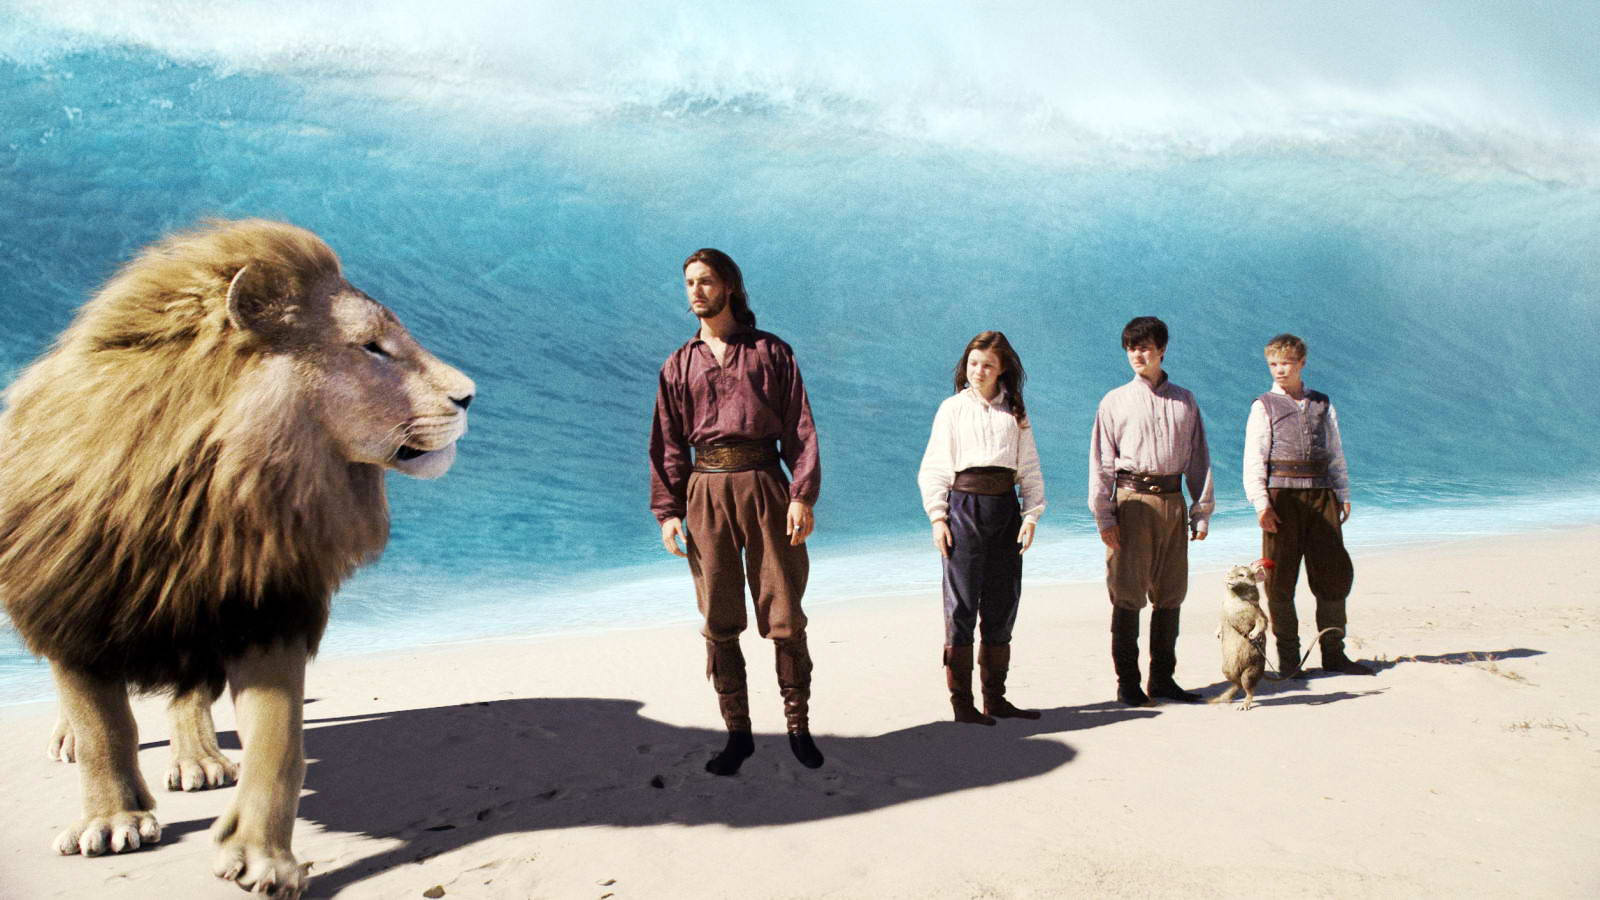 Ben Barnes, Georgie Henley and Skandar Keynes in Fox Walden's The Chronicles of Narnia: The Voyage of the Dawn Treader (2010)